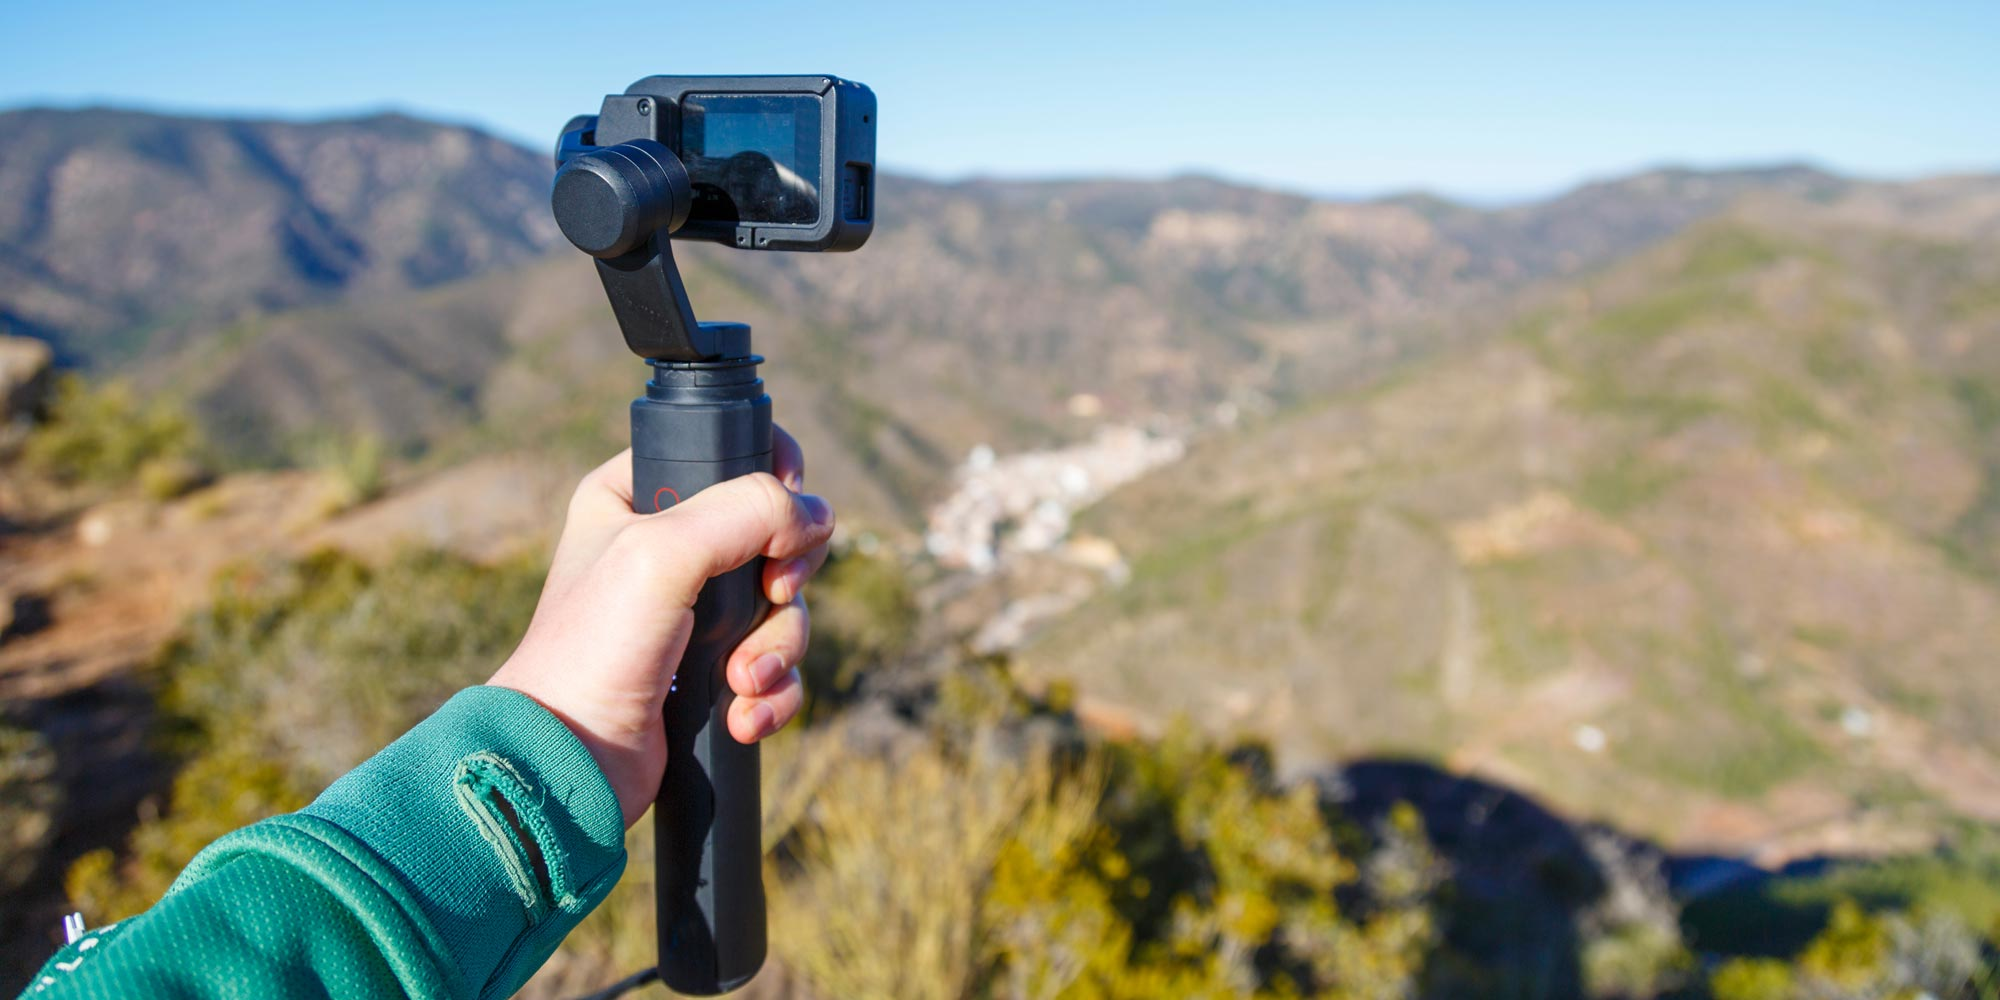 Gimbal Stabilizers: What You Need to Know